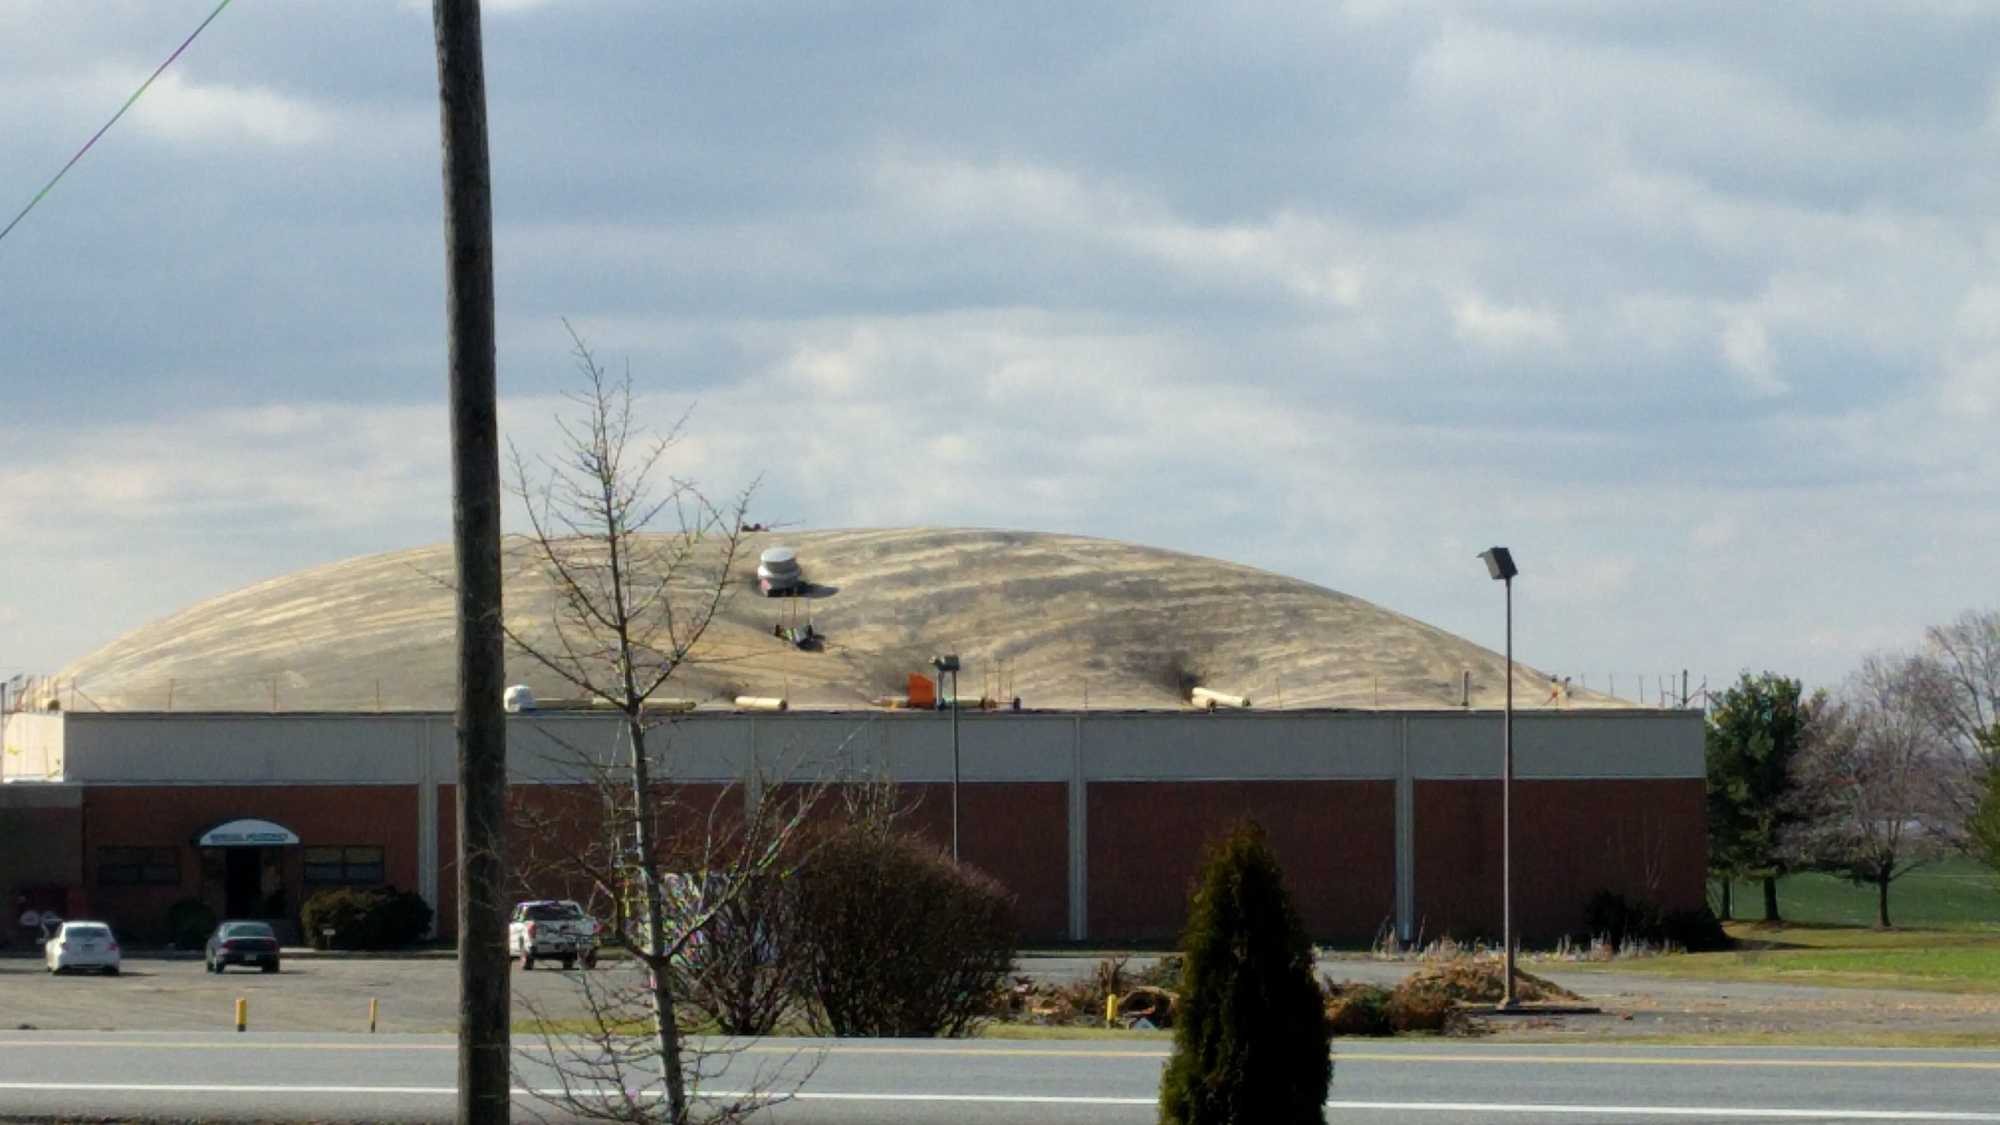 PHOTO: Roof inflated at former Donegal Industries building